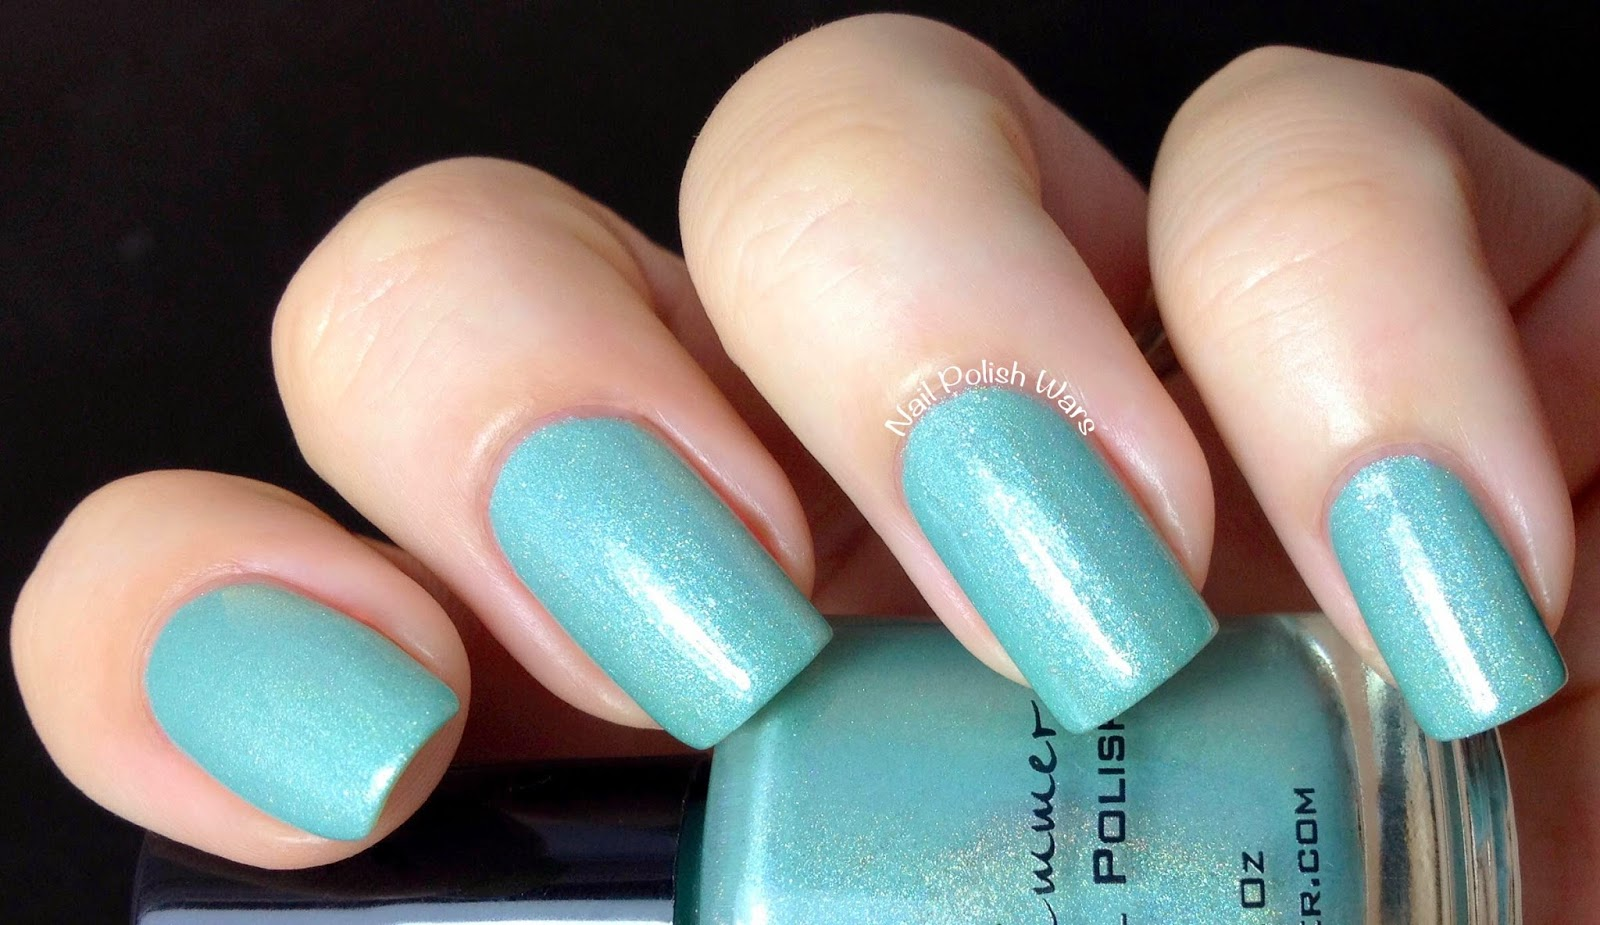 Nail Polish Wars Kbshimmer Late Summer 2014 Collection Swatch Review